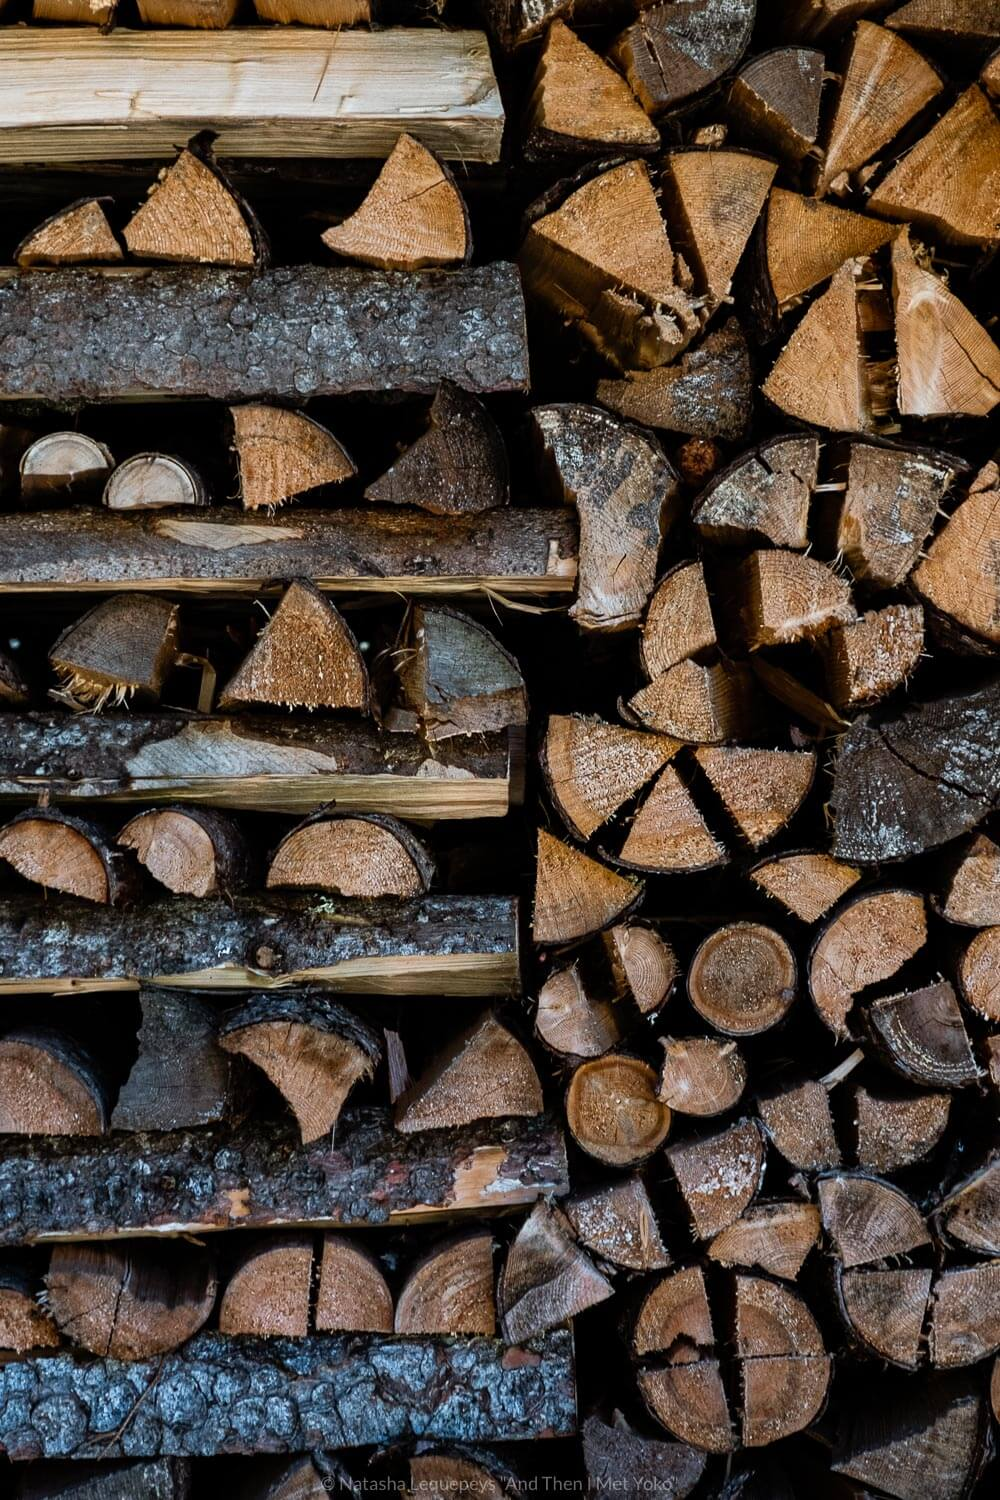 """Cut wood in Jungfrau, Switzerland. Travel photography and guide by © Natasha Lequepeys for """"And Then I Met Yoko"""". #wengen #switzerland #jungfrau #travelphotography #fujifilm"""